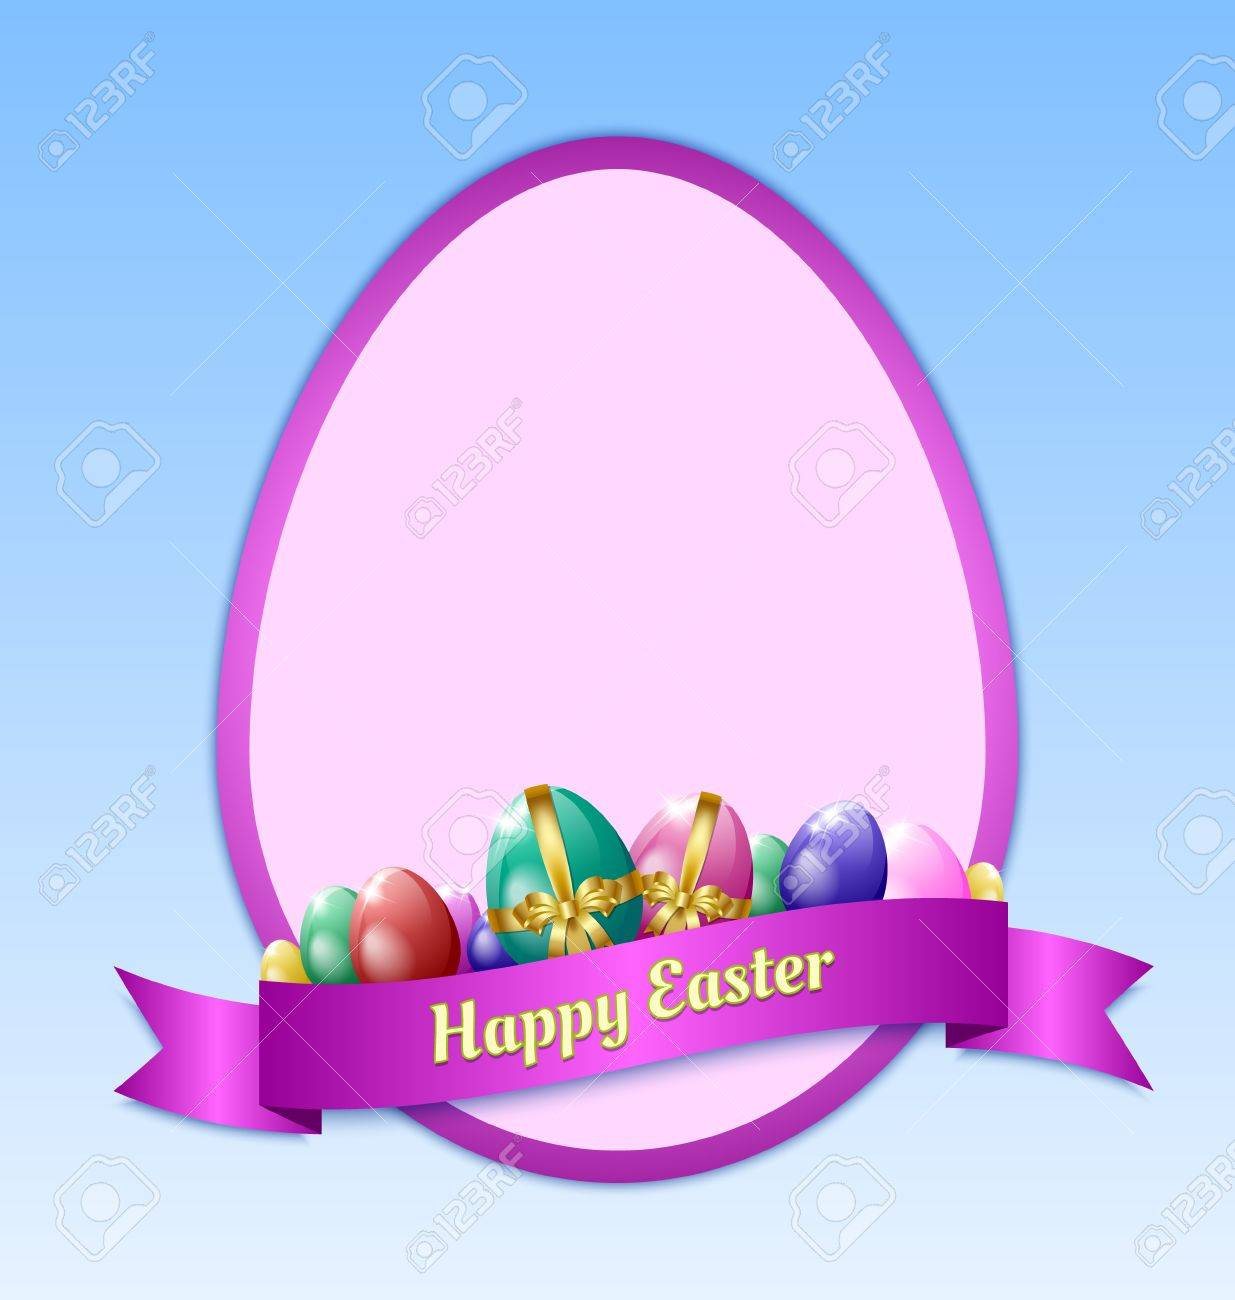 Happy Easter Greeting Card Template With Eggs And Ribbon Royalty – Easter Greeting Card Template